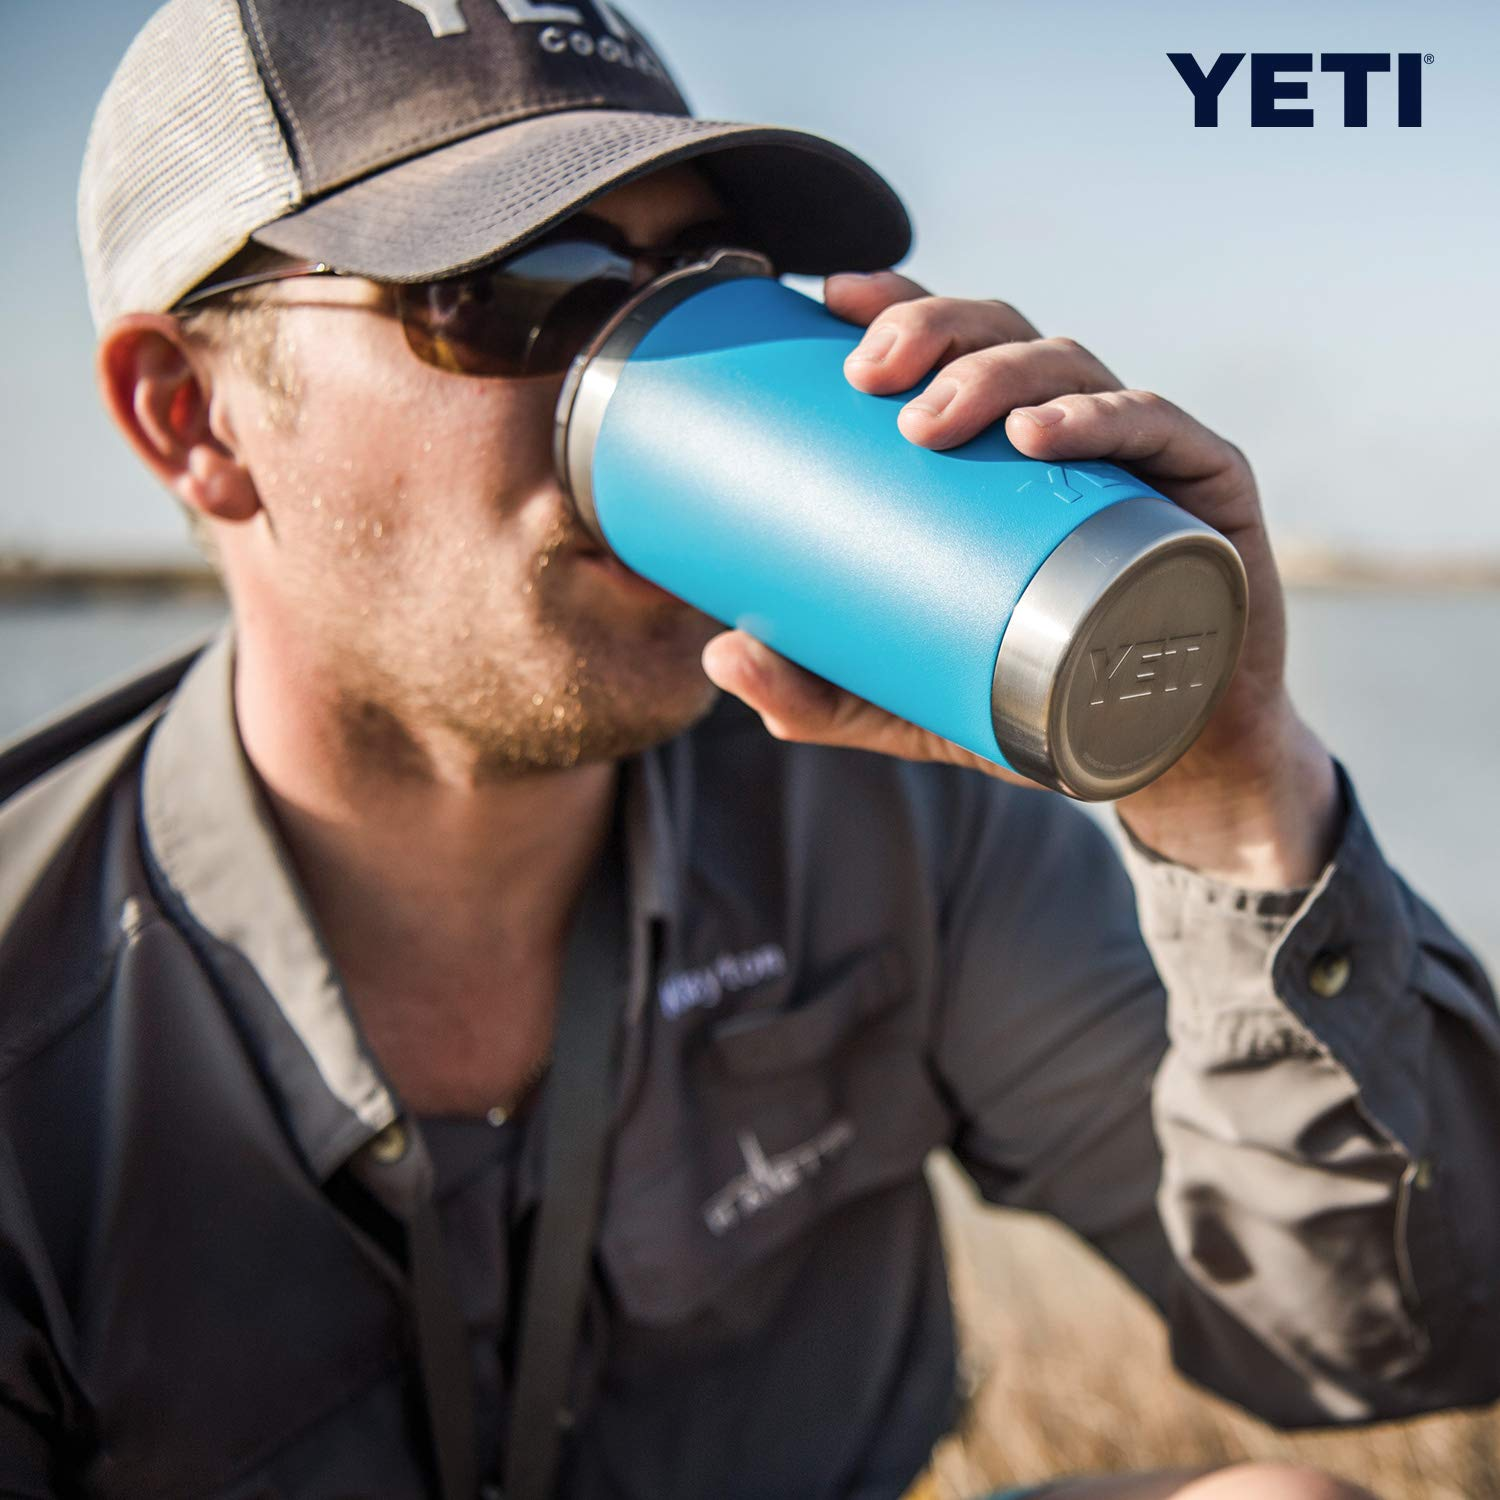 YETI Rambler 20 oz Stainless Steel Vacuum Insulated Tumbler w/MagSlider Lid, Reef Blue by YETI (Image #7)